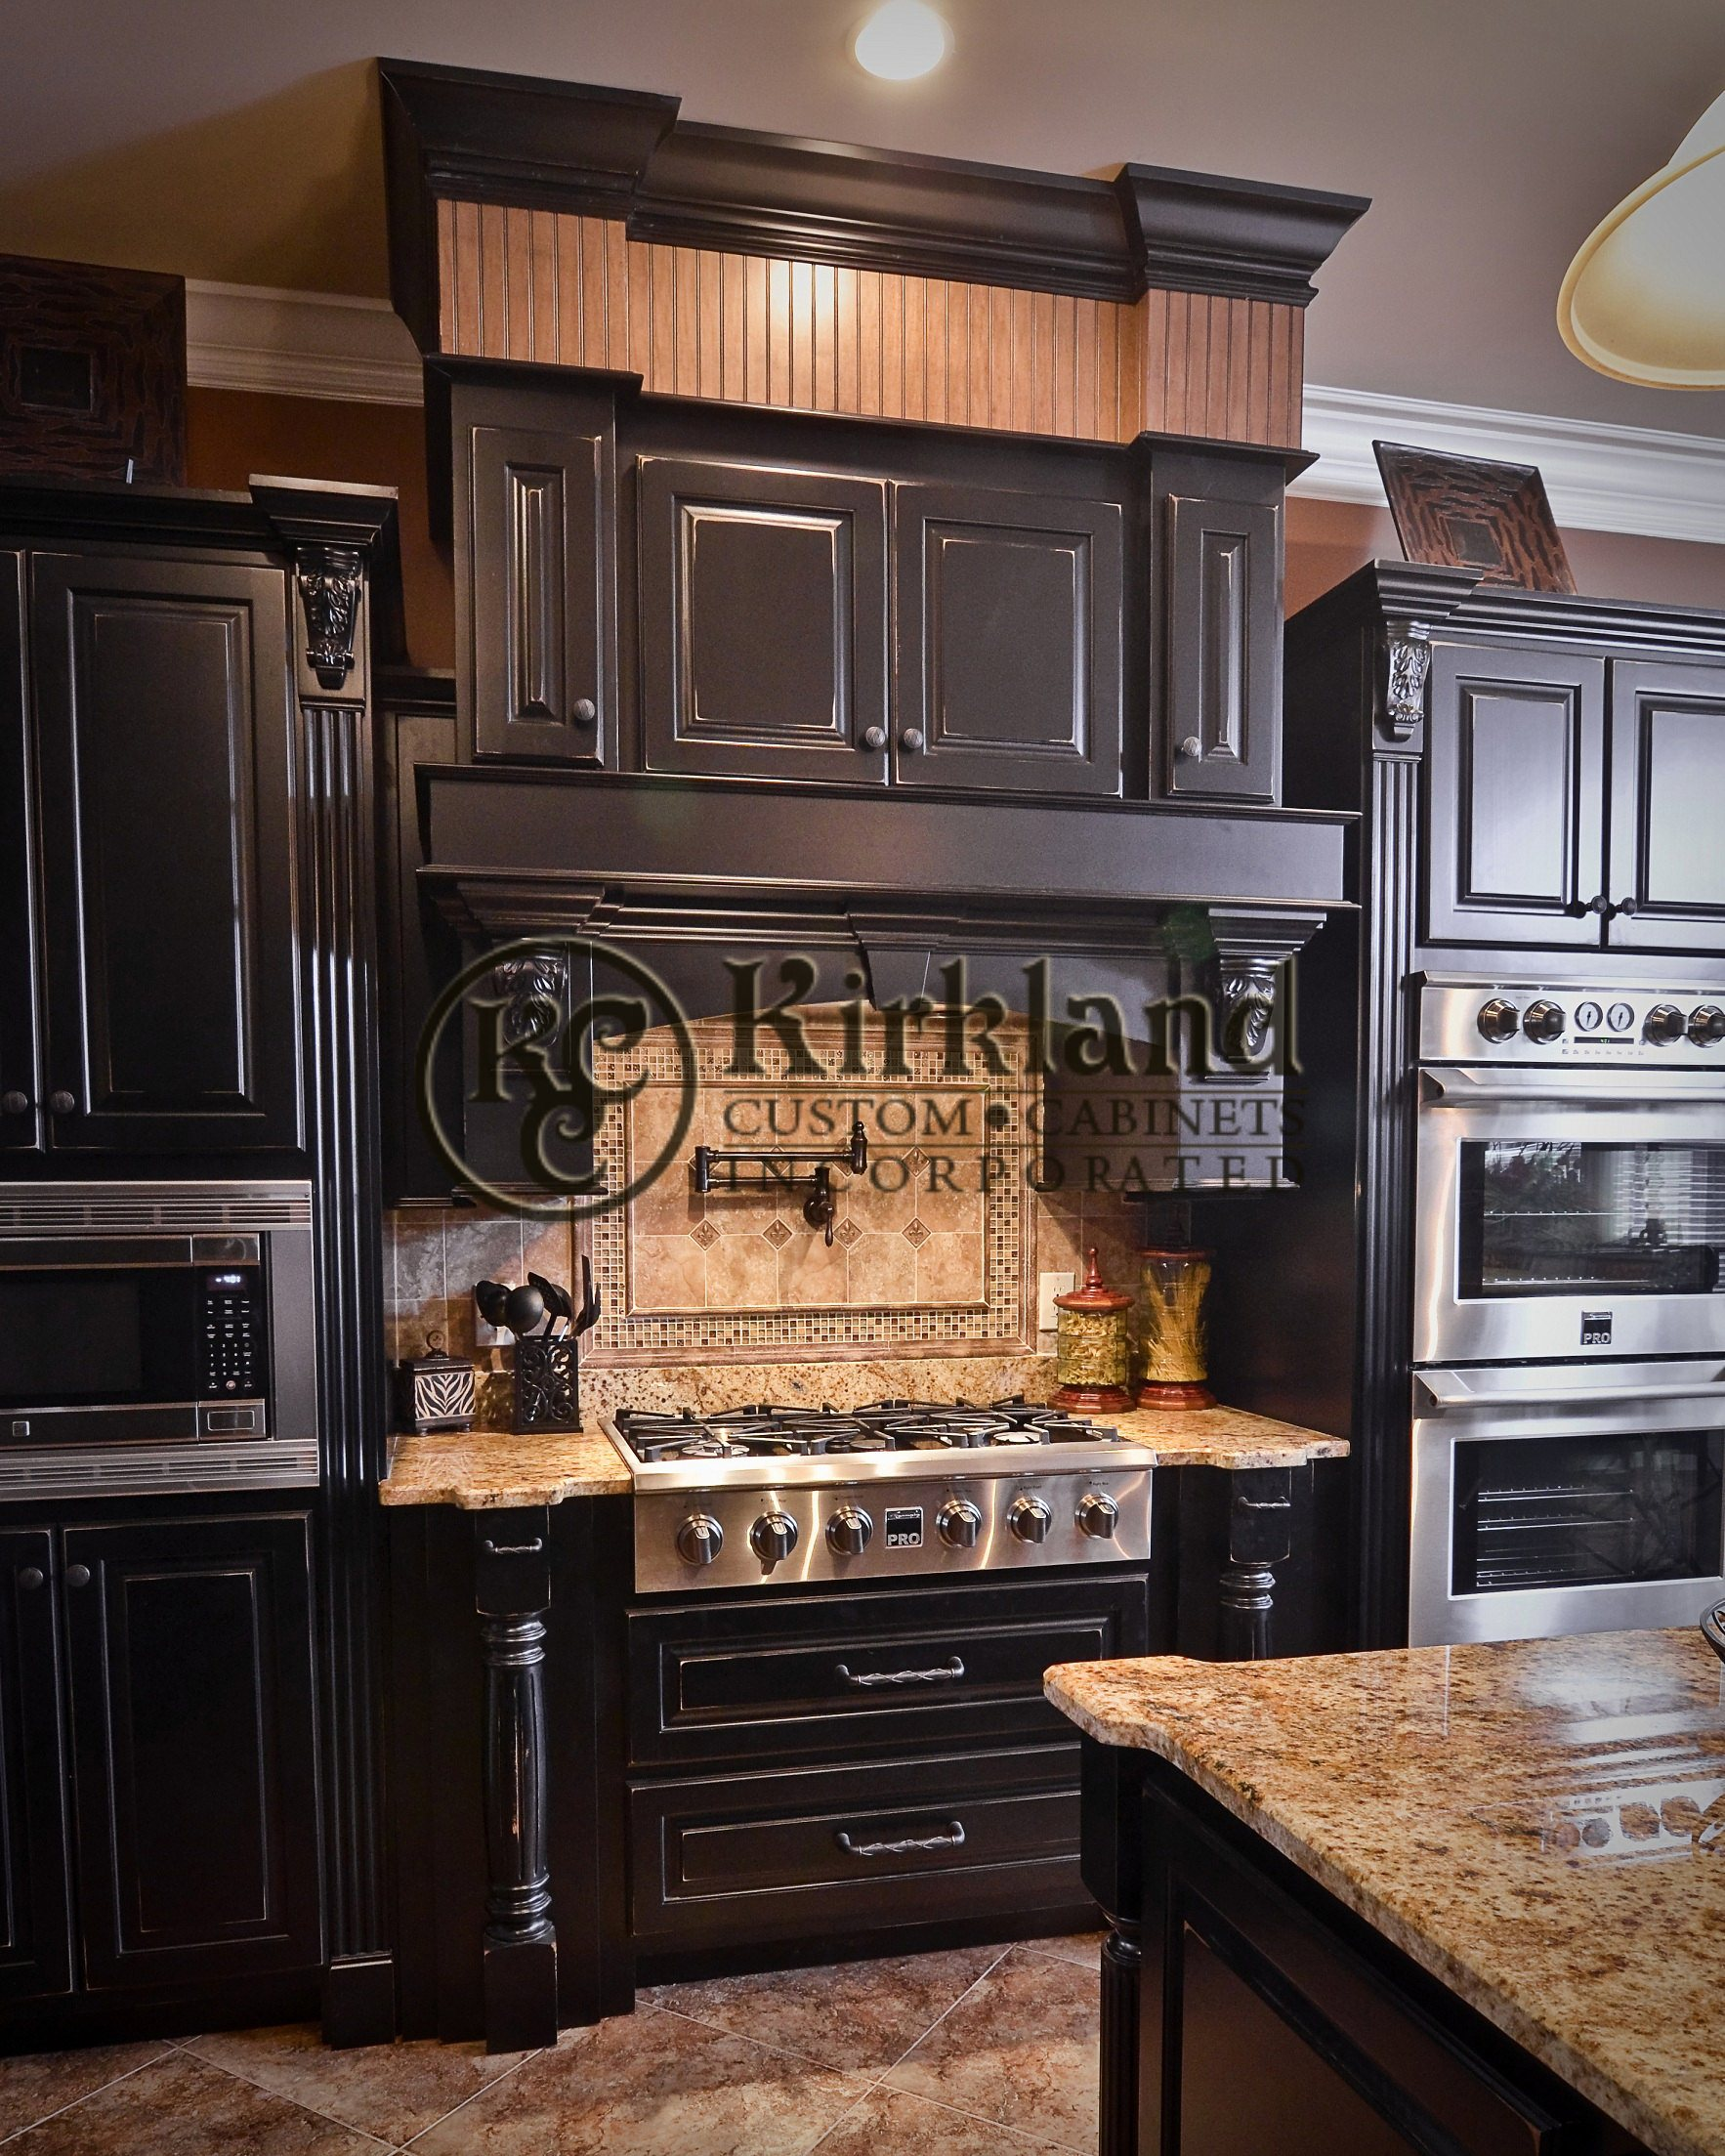 French kitchens kirkland custom cabinets inc for Wood kitchen cabinets